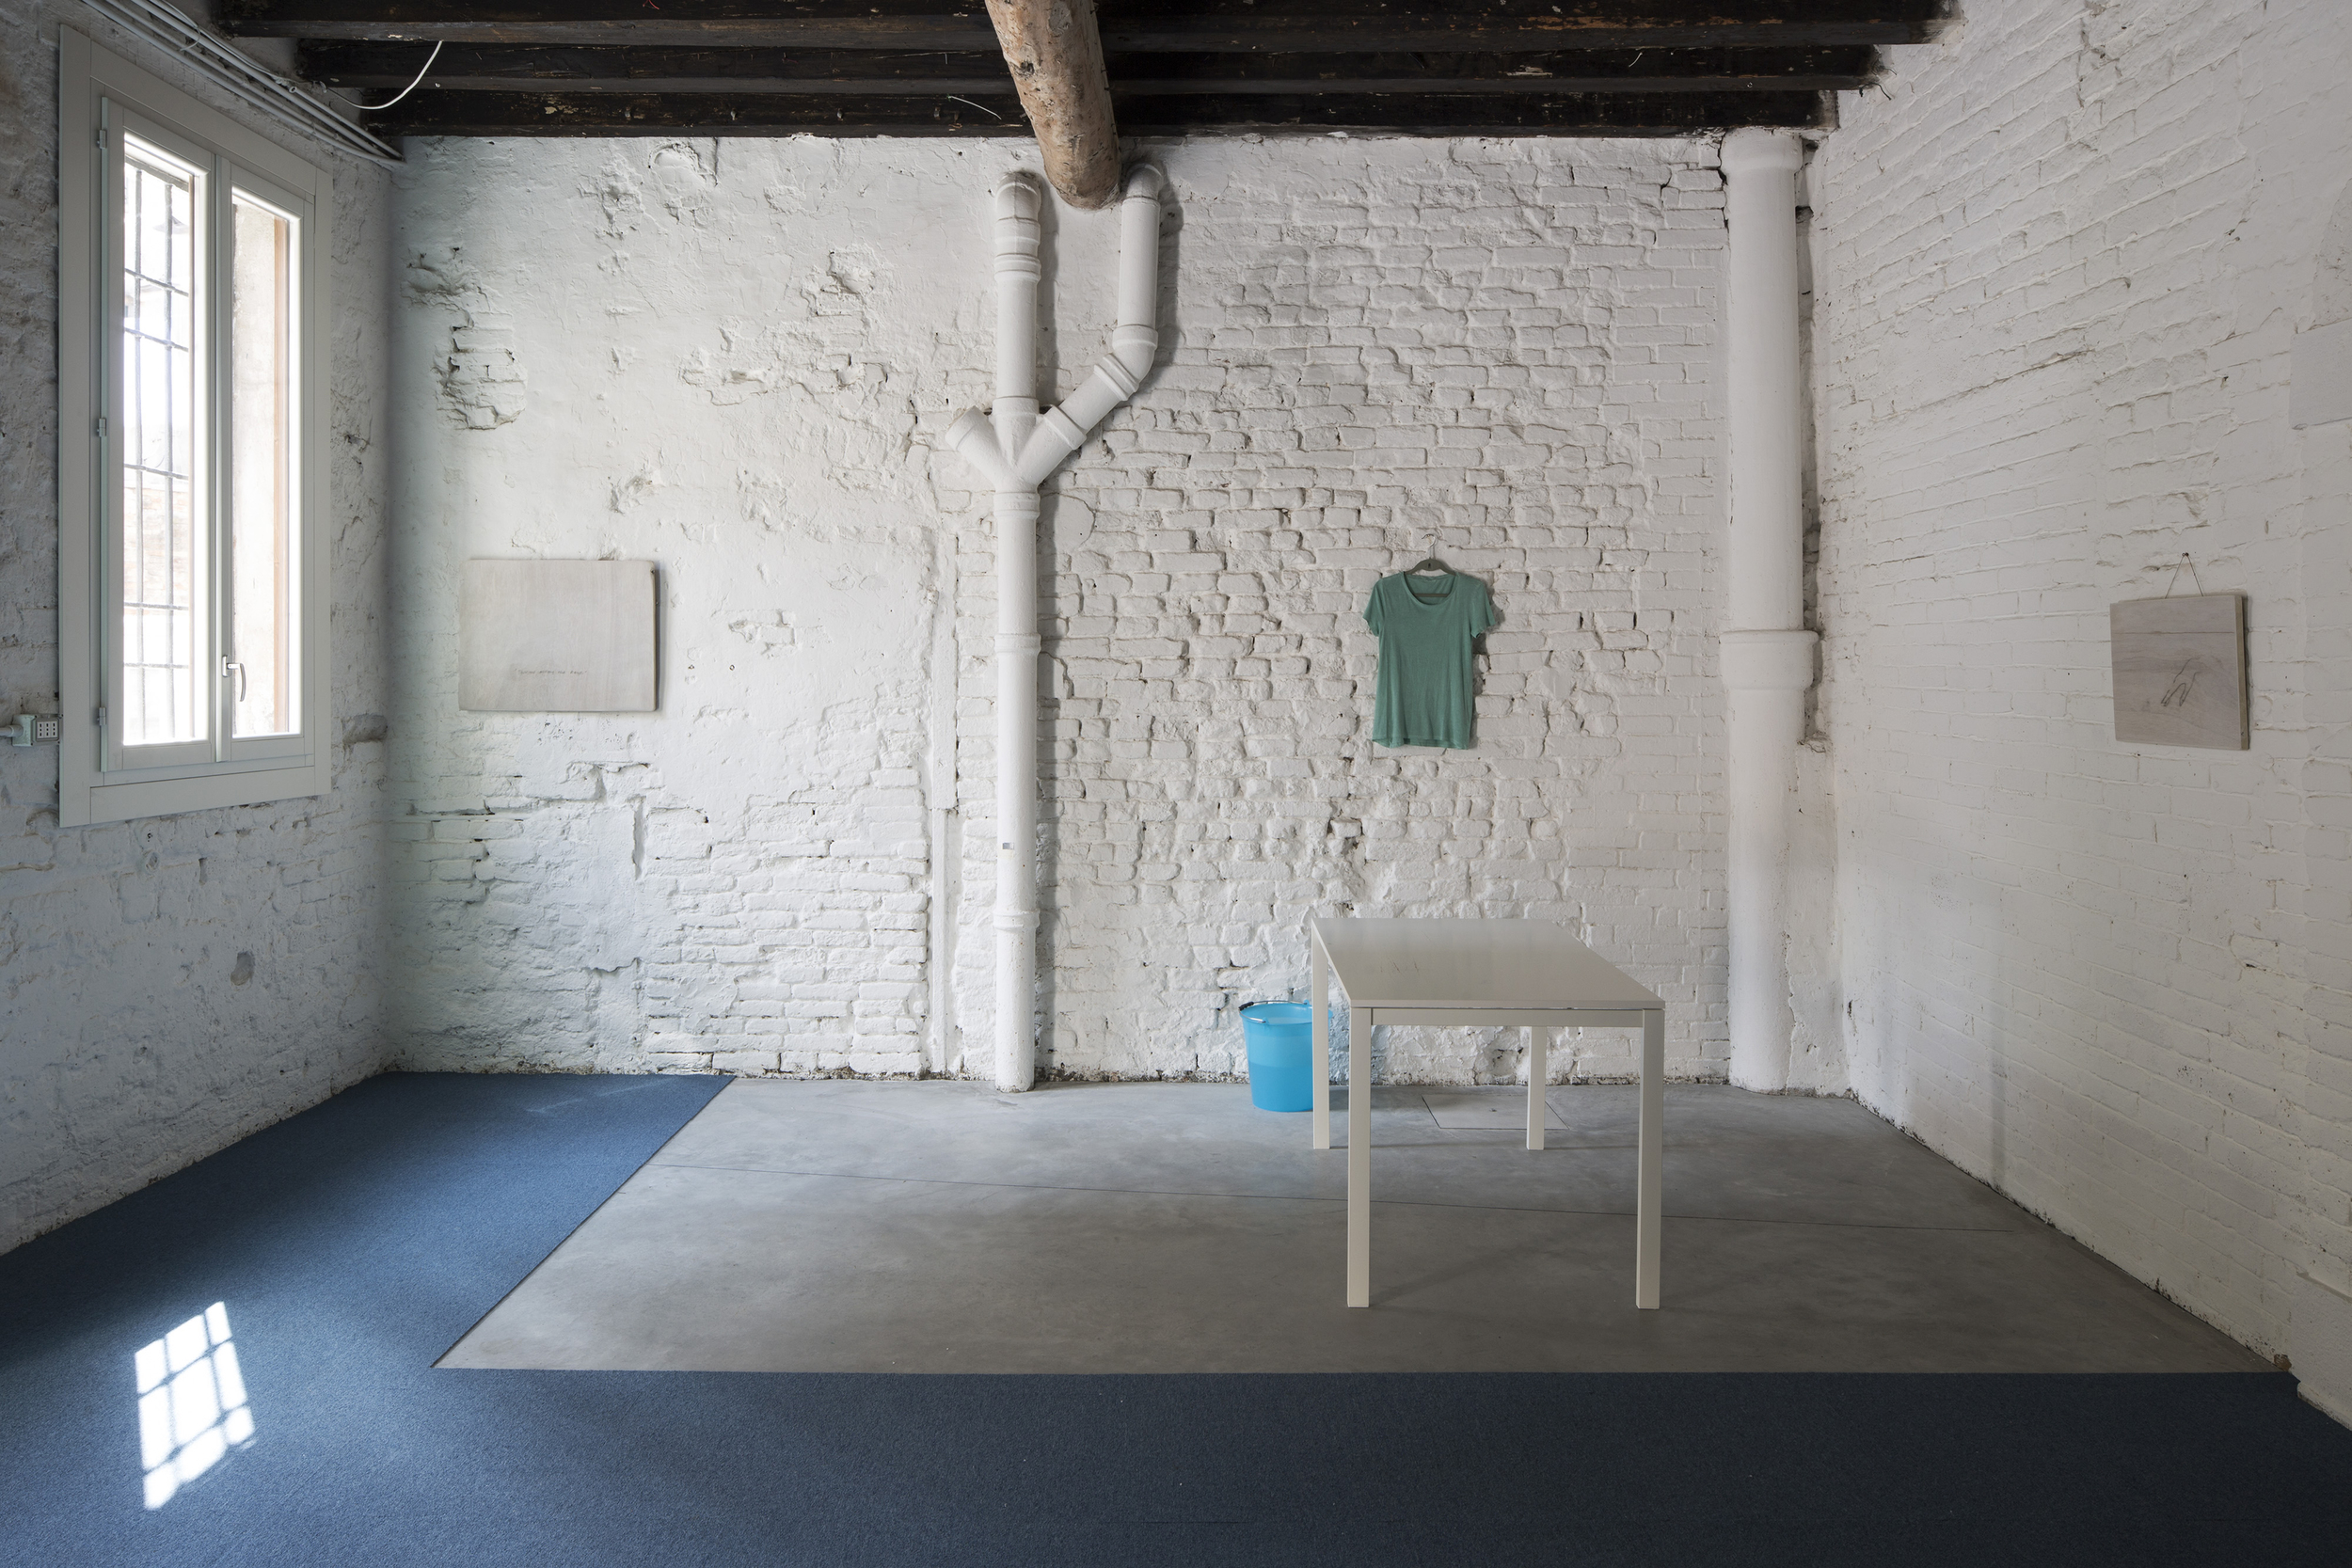 Lee Kit  ' You (you).' , 2013 Installation view at the 55th Venice Biennale Photo: David Levine Courtesy the artist, M+, WKCDA, HKADC, and Lombard Freid Gallery